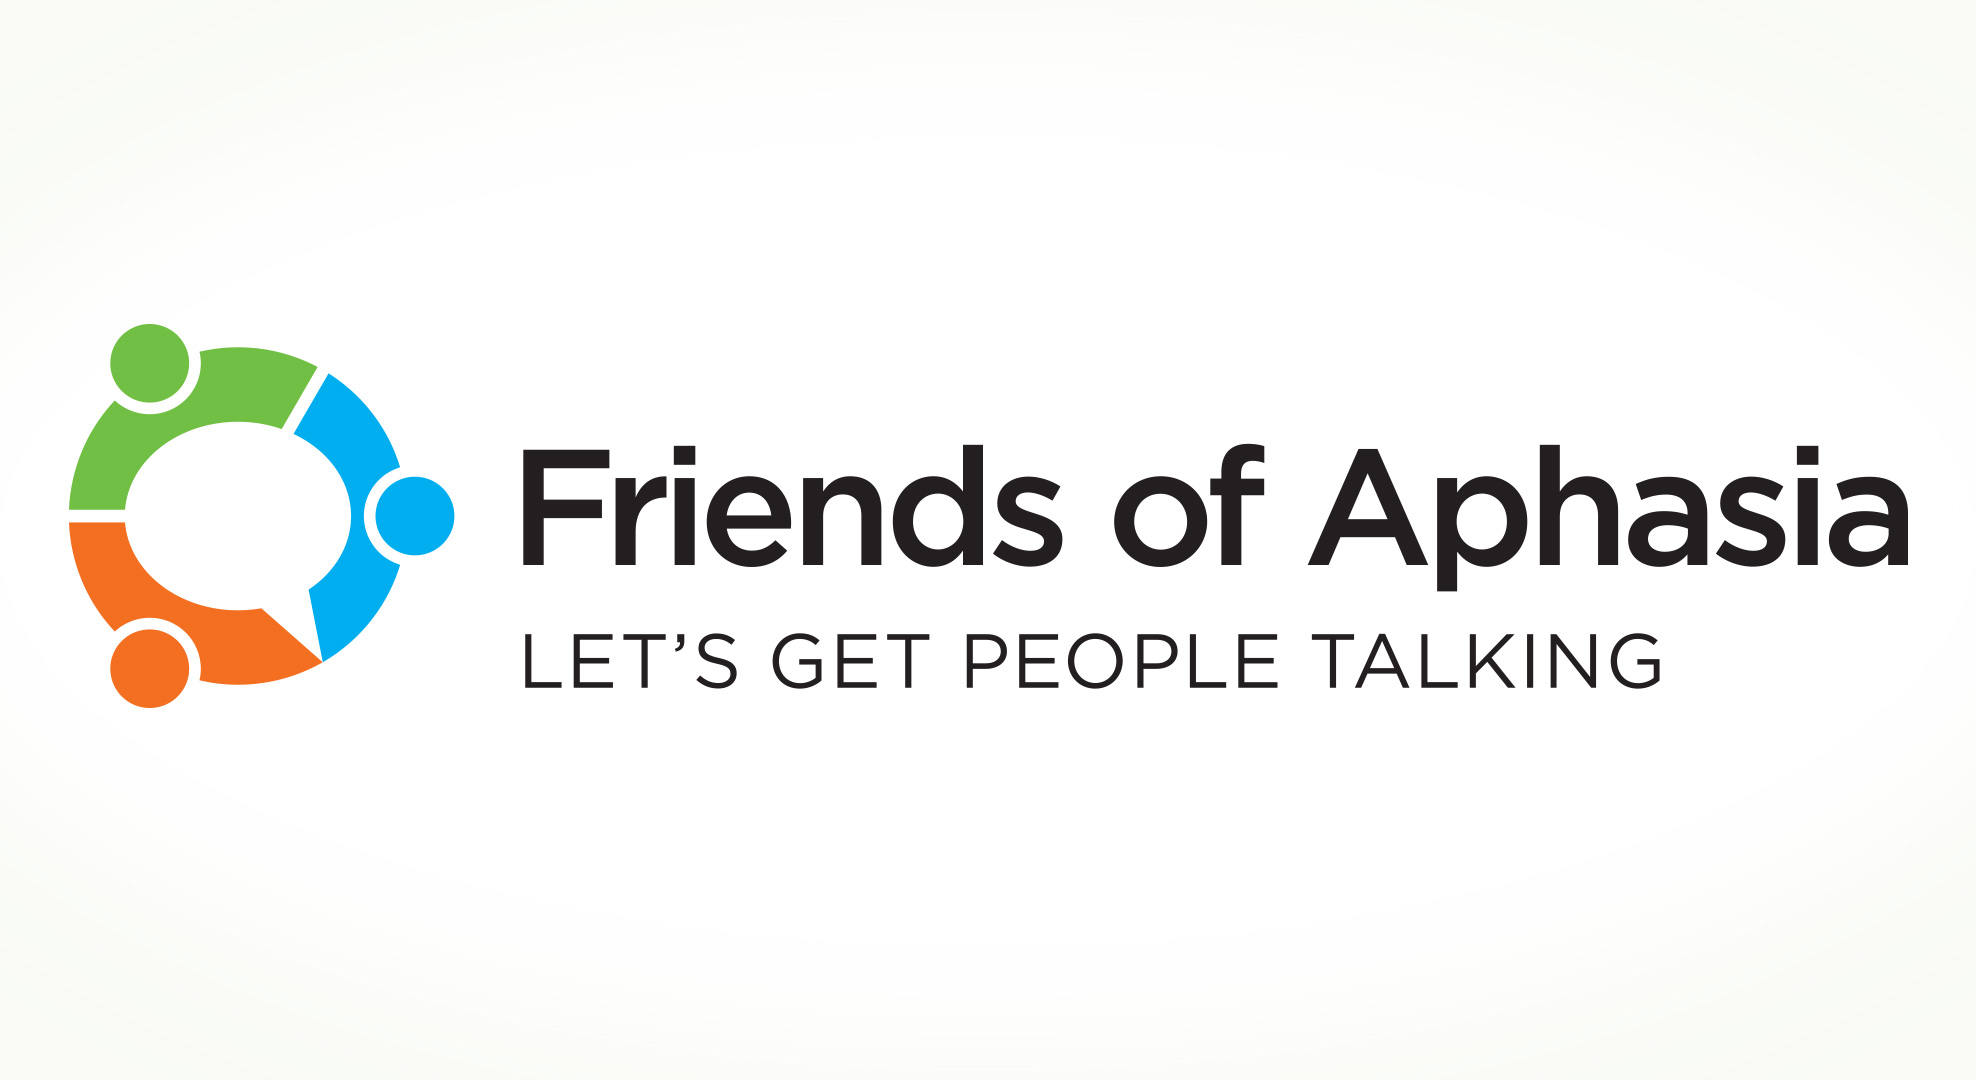 Friends of Aphasia